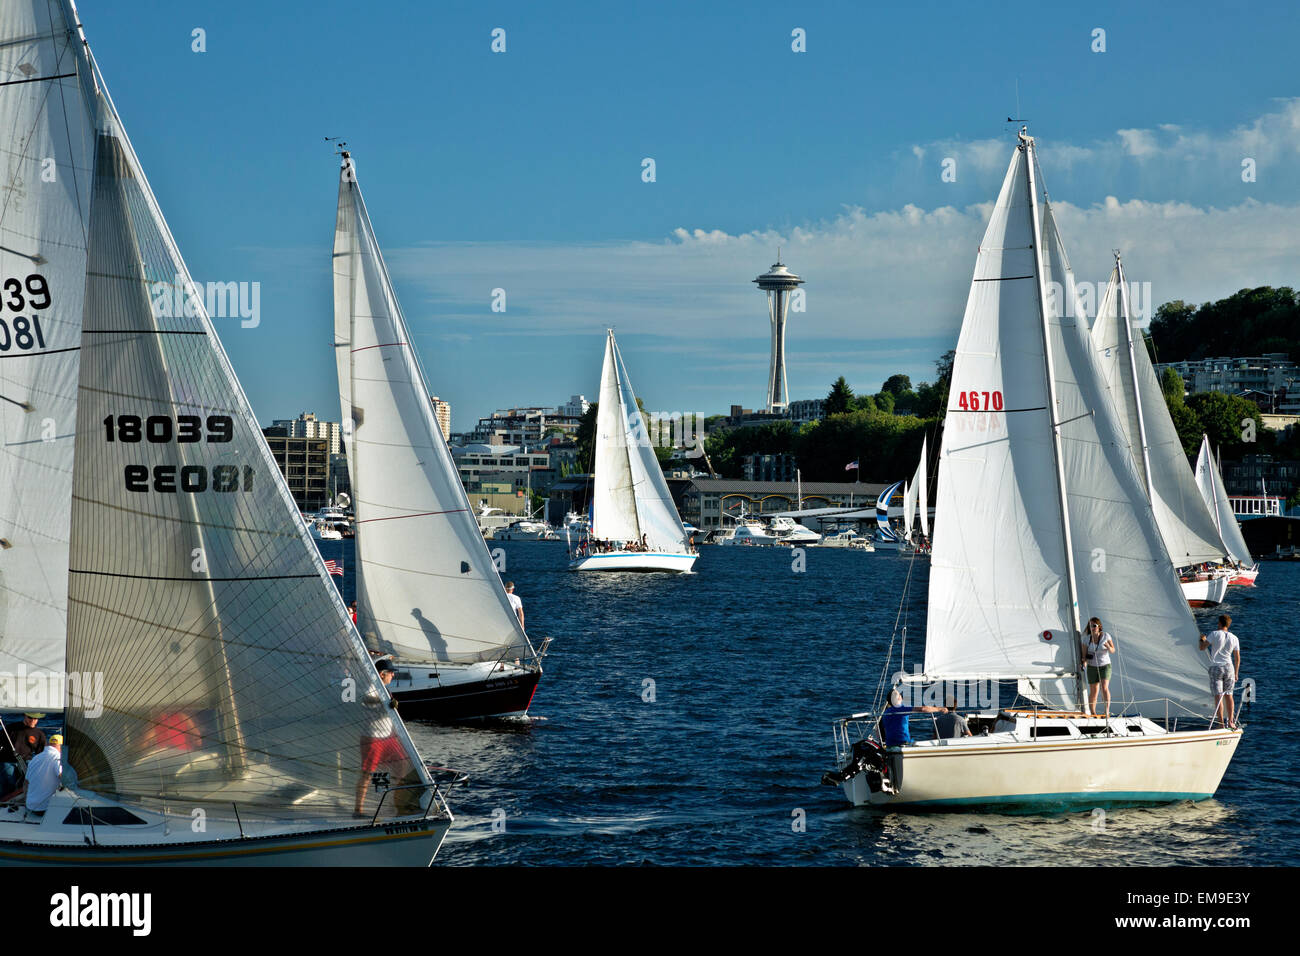 WA10386-00...WASHINGTON - The Tuesday Duck Dodge in Seattle makes for a busy evening on Lake Union. (No MR). - Stock Image